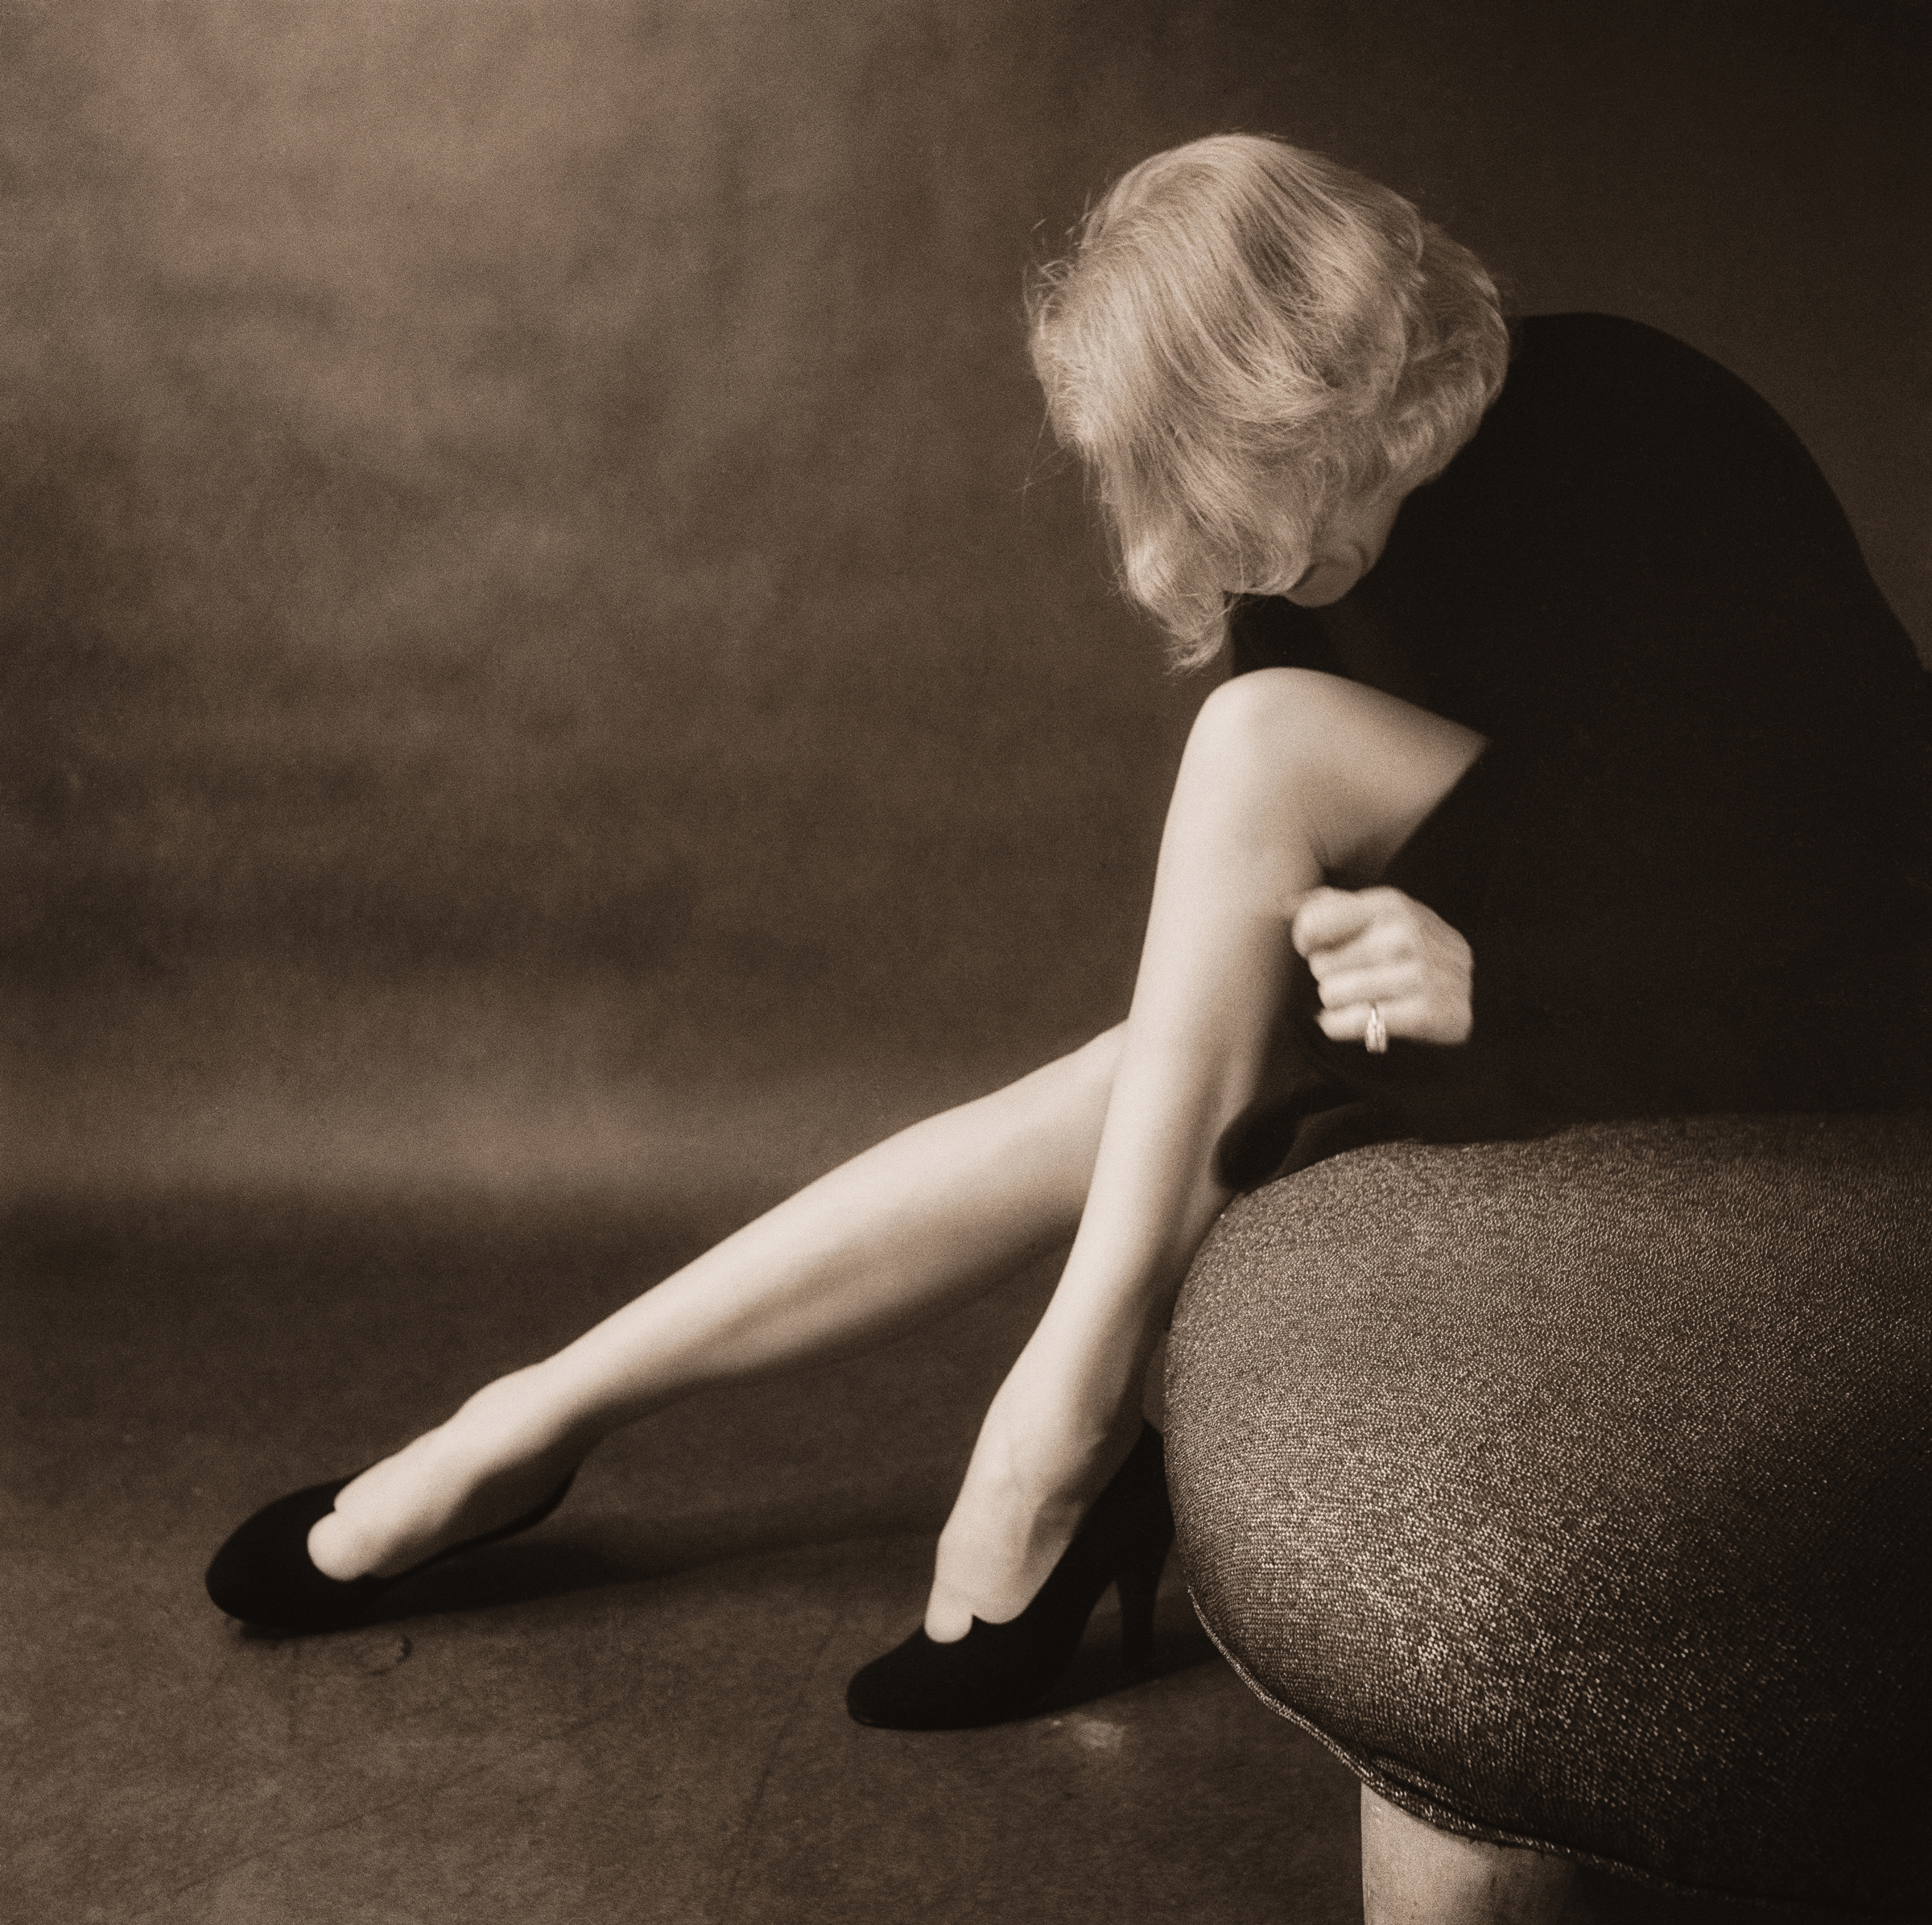 Marlene Dietrich New York, 1952  © Milton H. Greene, courtesy Galerie de l'Instant, Paris